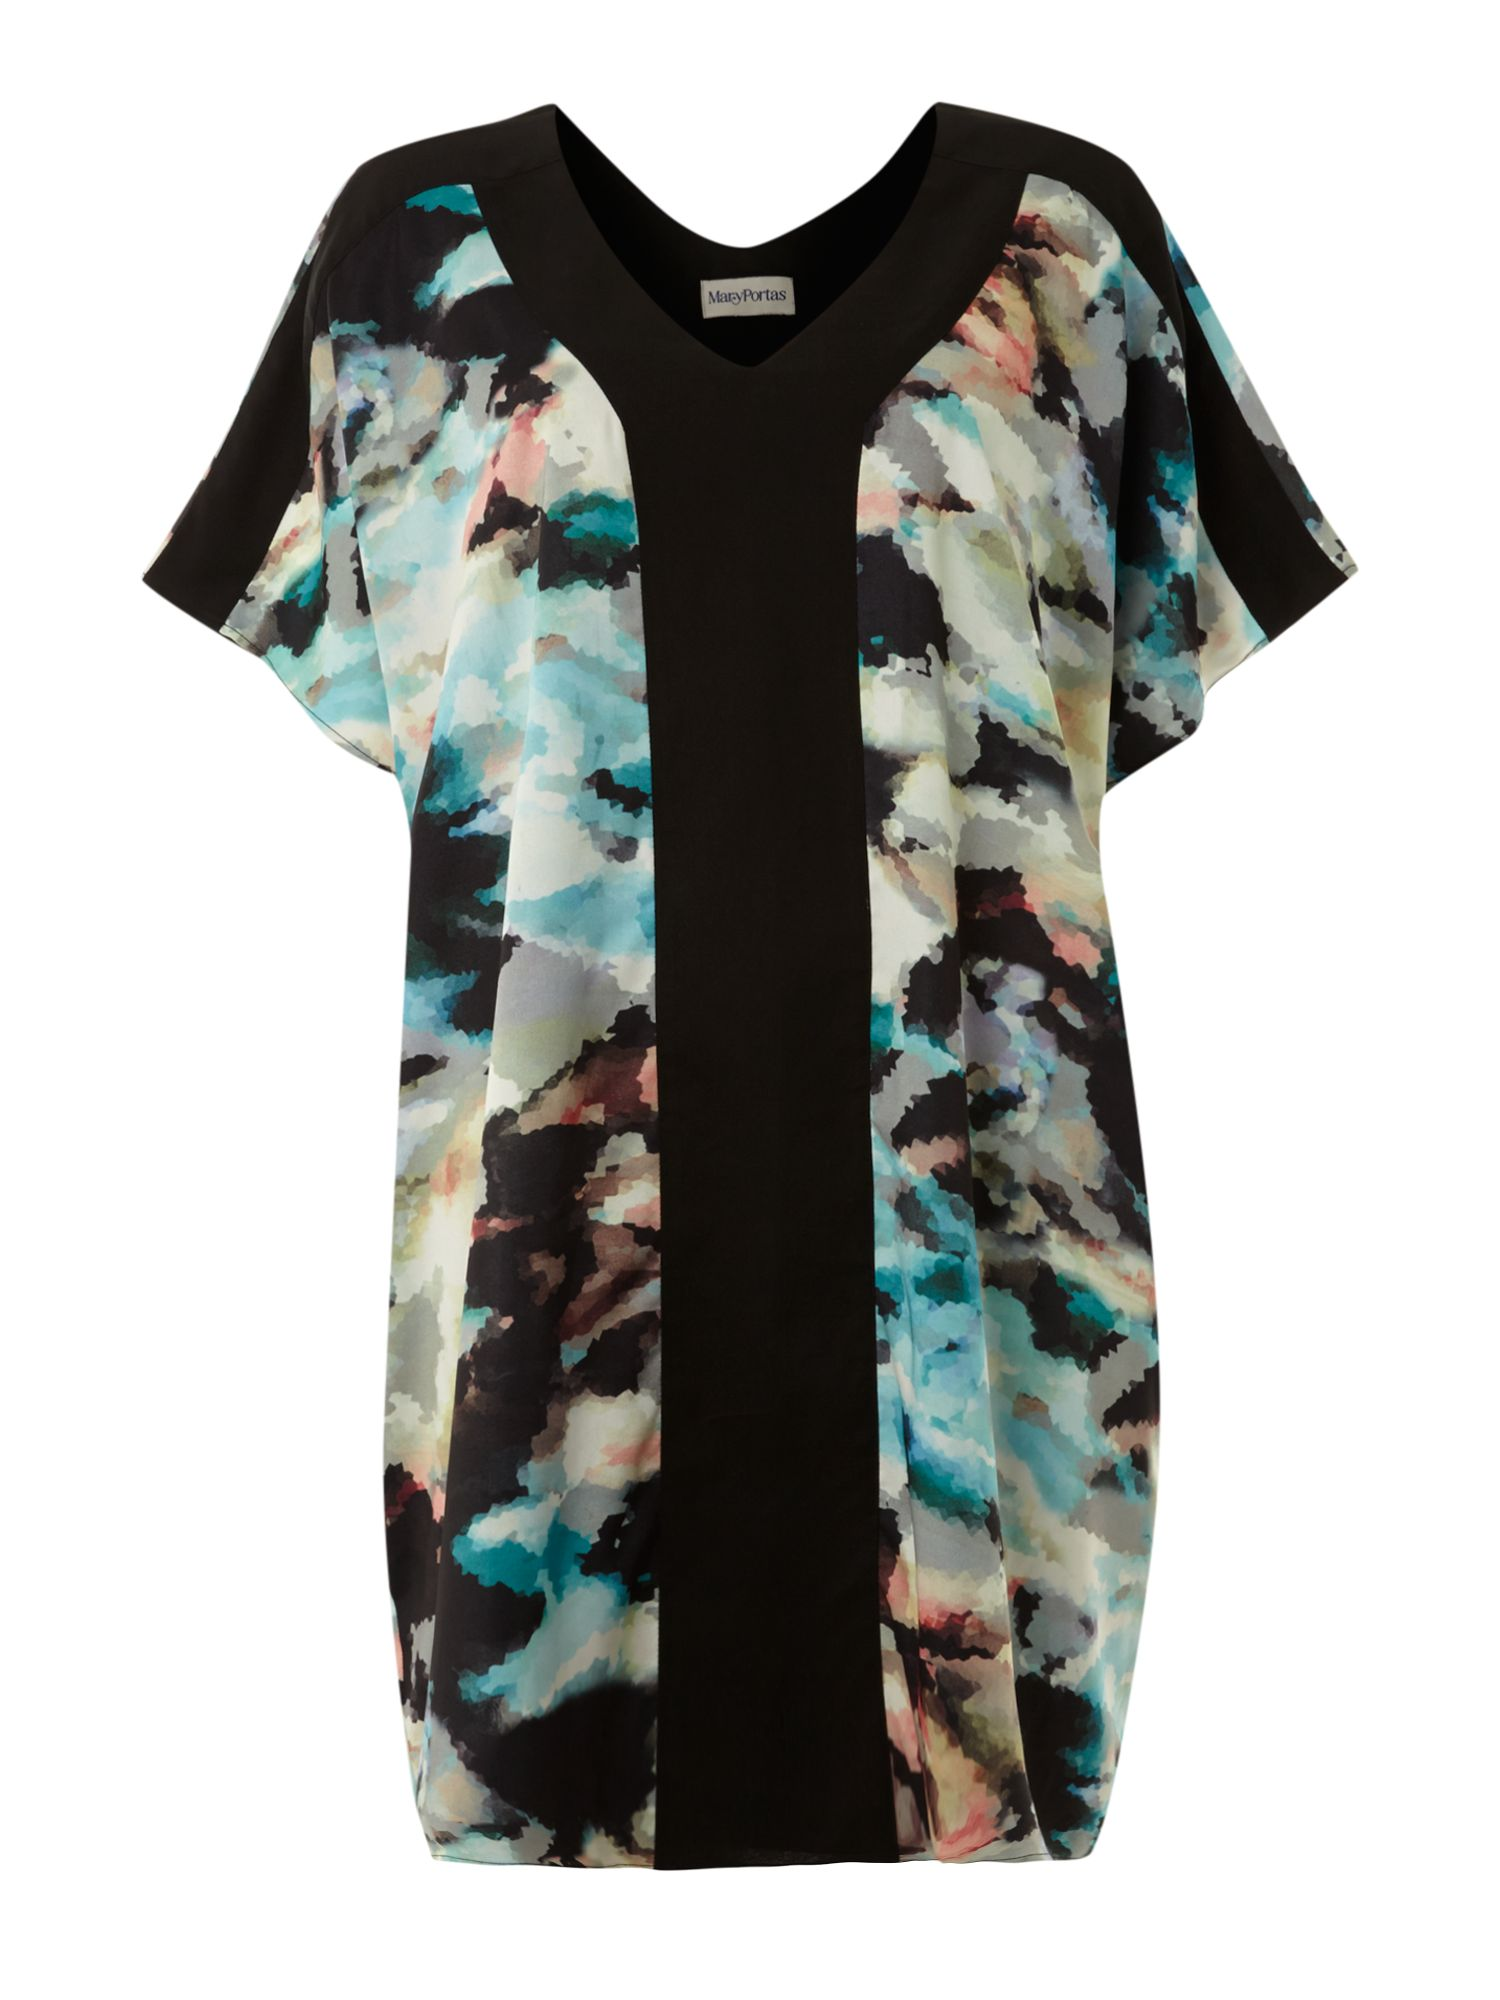 Printed and bonded square dress